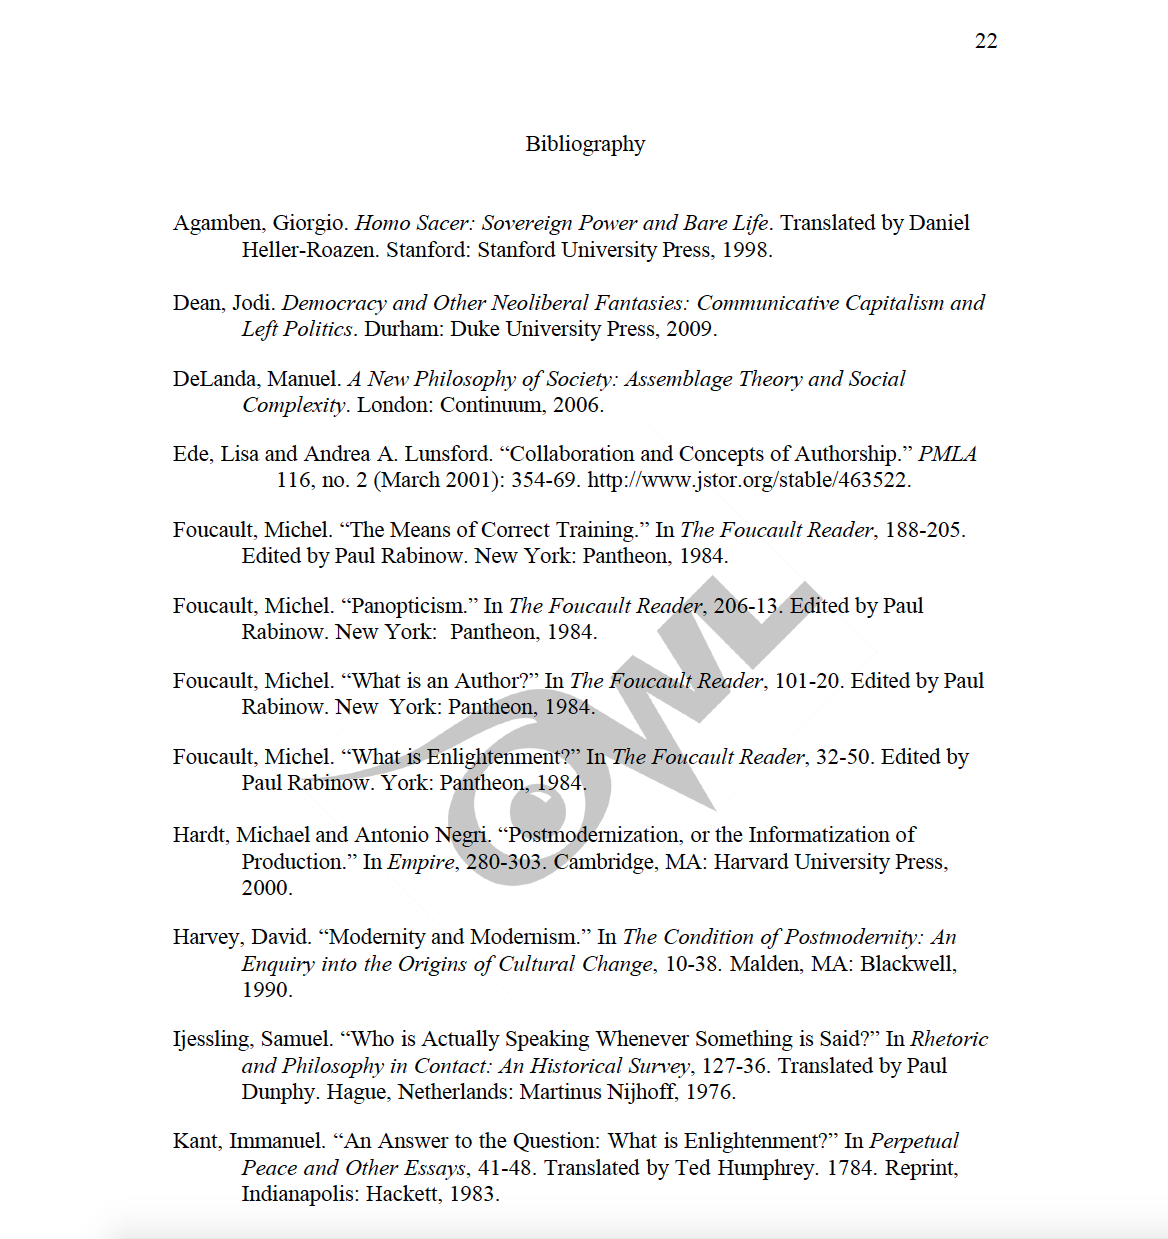 This image shows the bibliography page of a CMS paper.